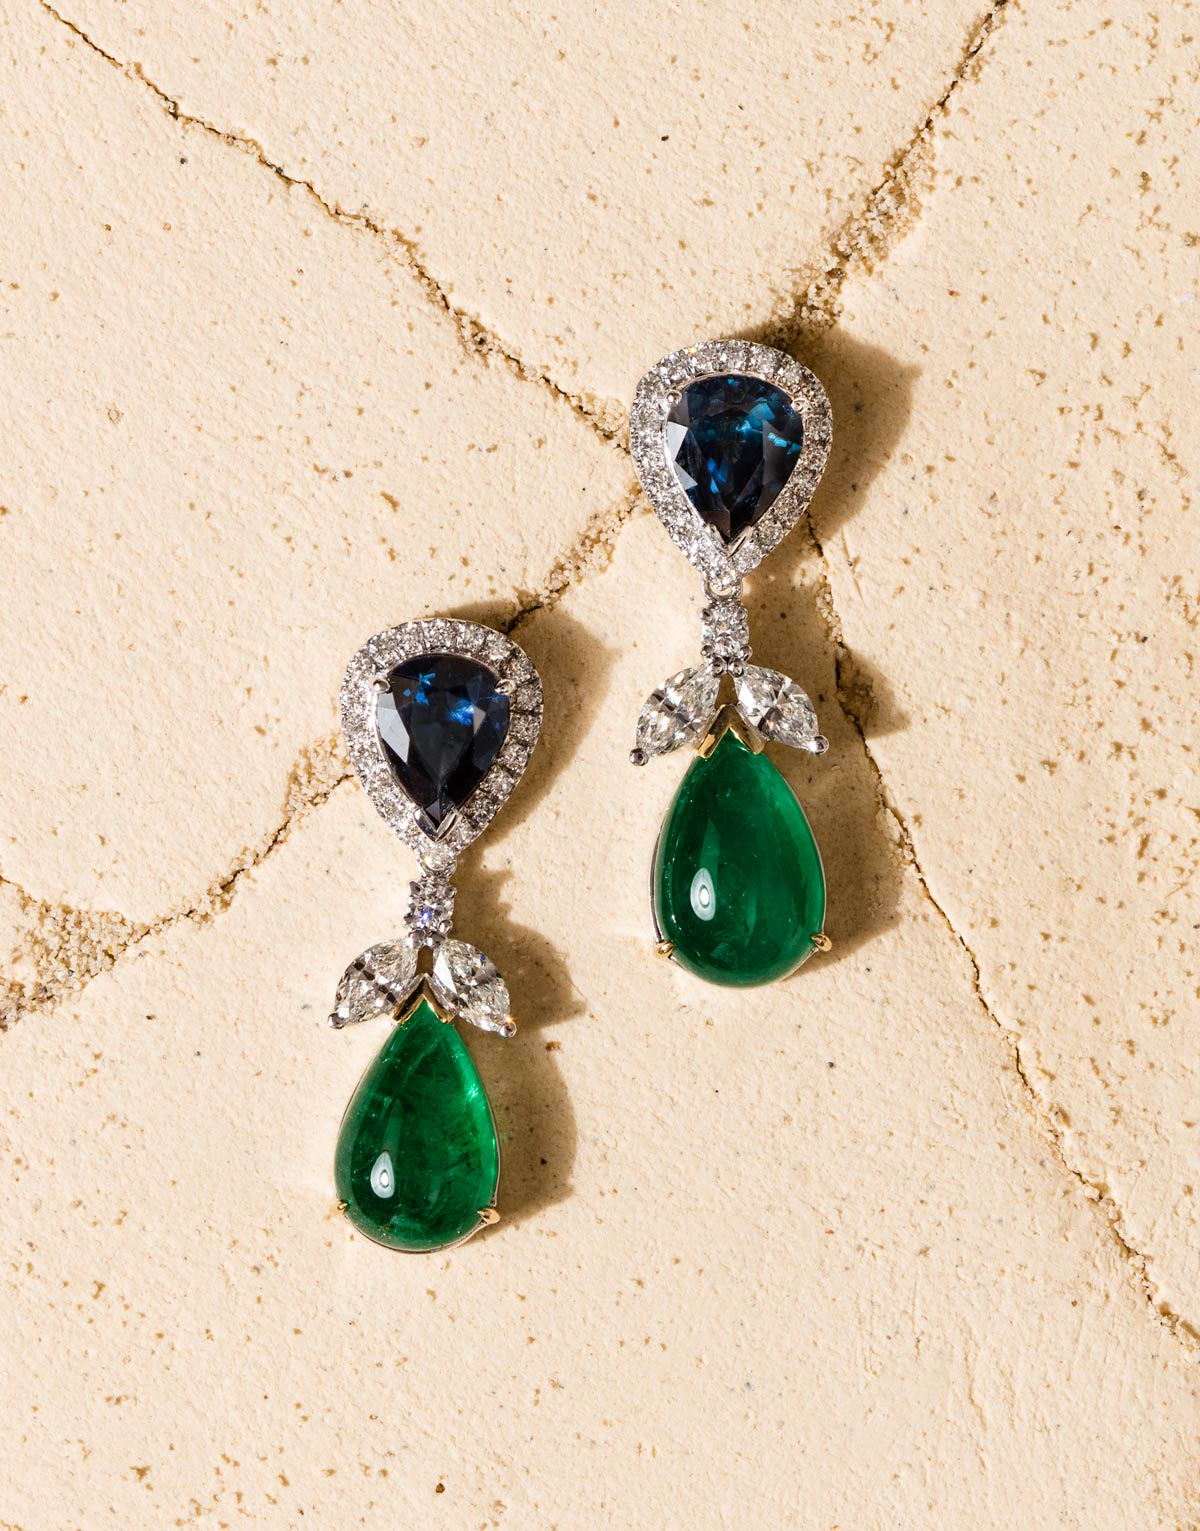 webPaul-Syjuco-drop-earrings-of-sapphires-emerald-cabochons-and-diamonds-in-white-gold